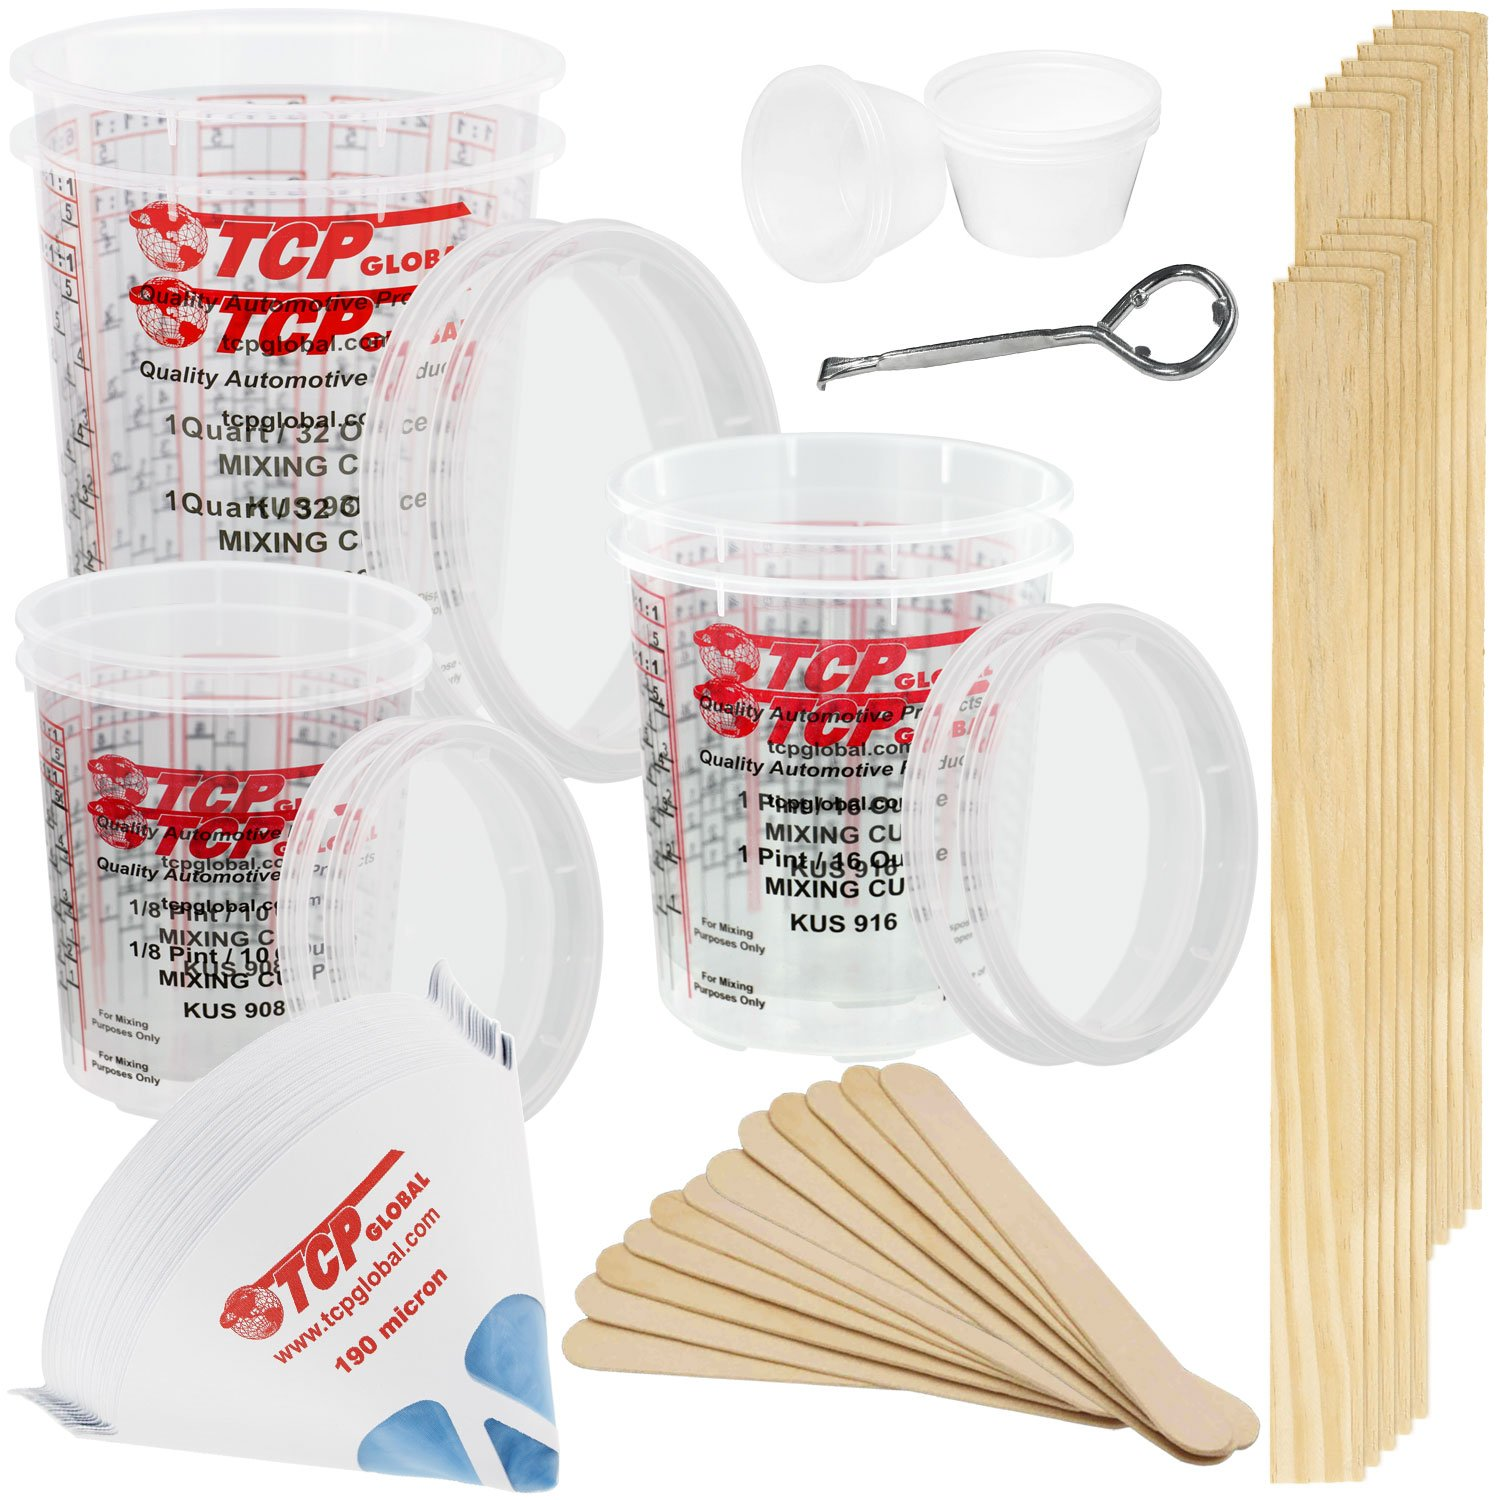 TCP GLOBAL Premium Paint Mixing Essentials Kit. Comes with 12 Mixing Cups, 6 Lids, 12 Wooden 12'' Mixing Sticks, 12 Wooden Mini Mixing Paddles, 12 HQ 190 Mesh Paint Strainers & Paint Can Opener.